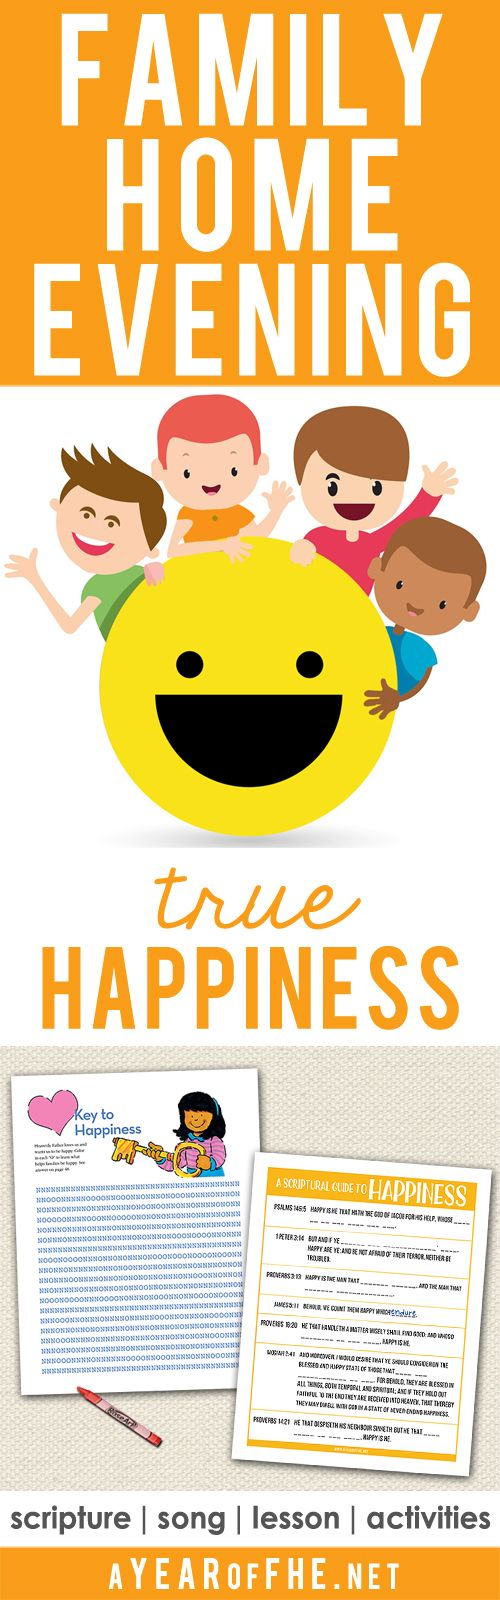 A Year of FHE // A free Family Home Evening about how we find TRUE HAPPINESS. Includes song, scripture, lesson and two free downloads for the activity; one for young kids and one for older kids & teens! #lds #happiness #fhe #scriptures